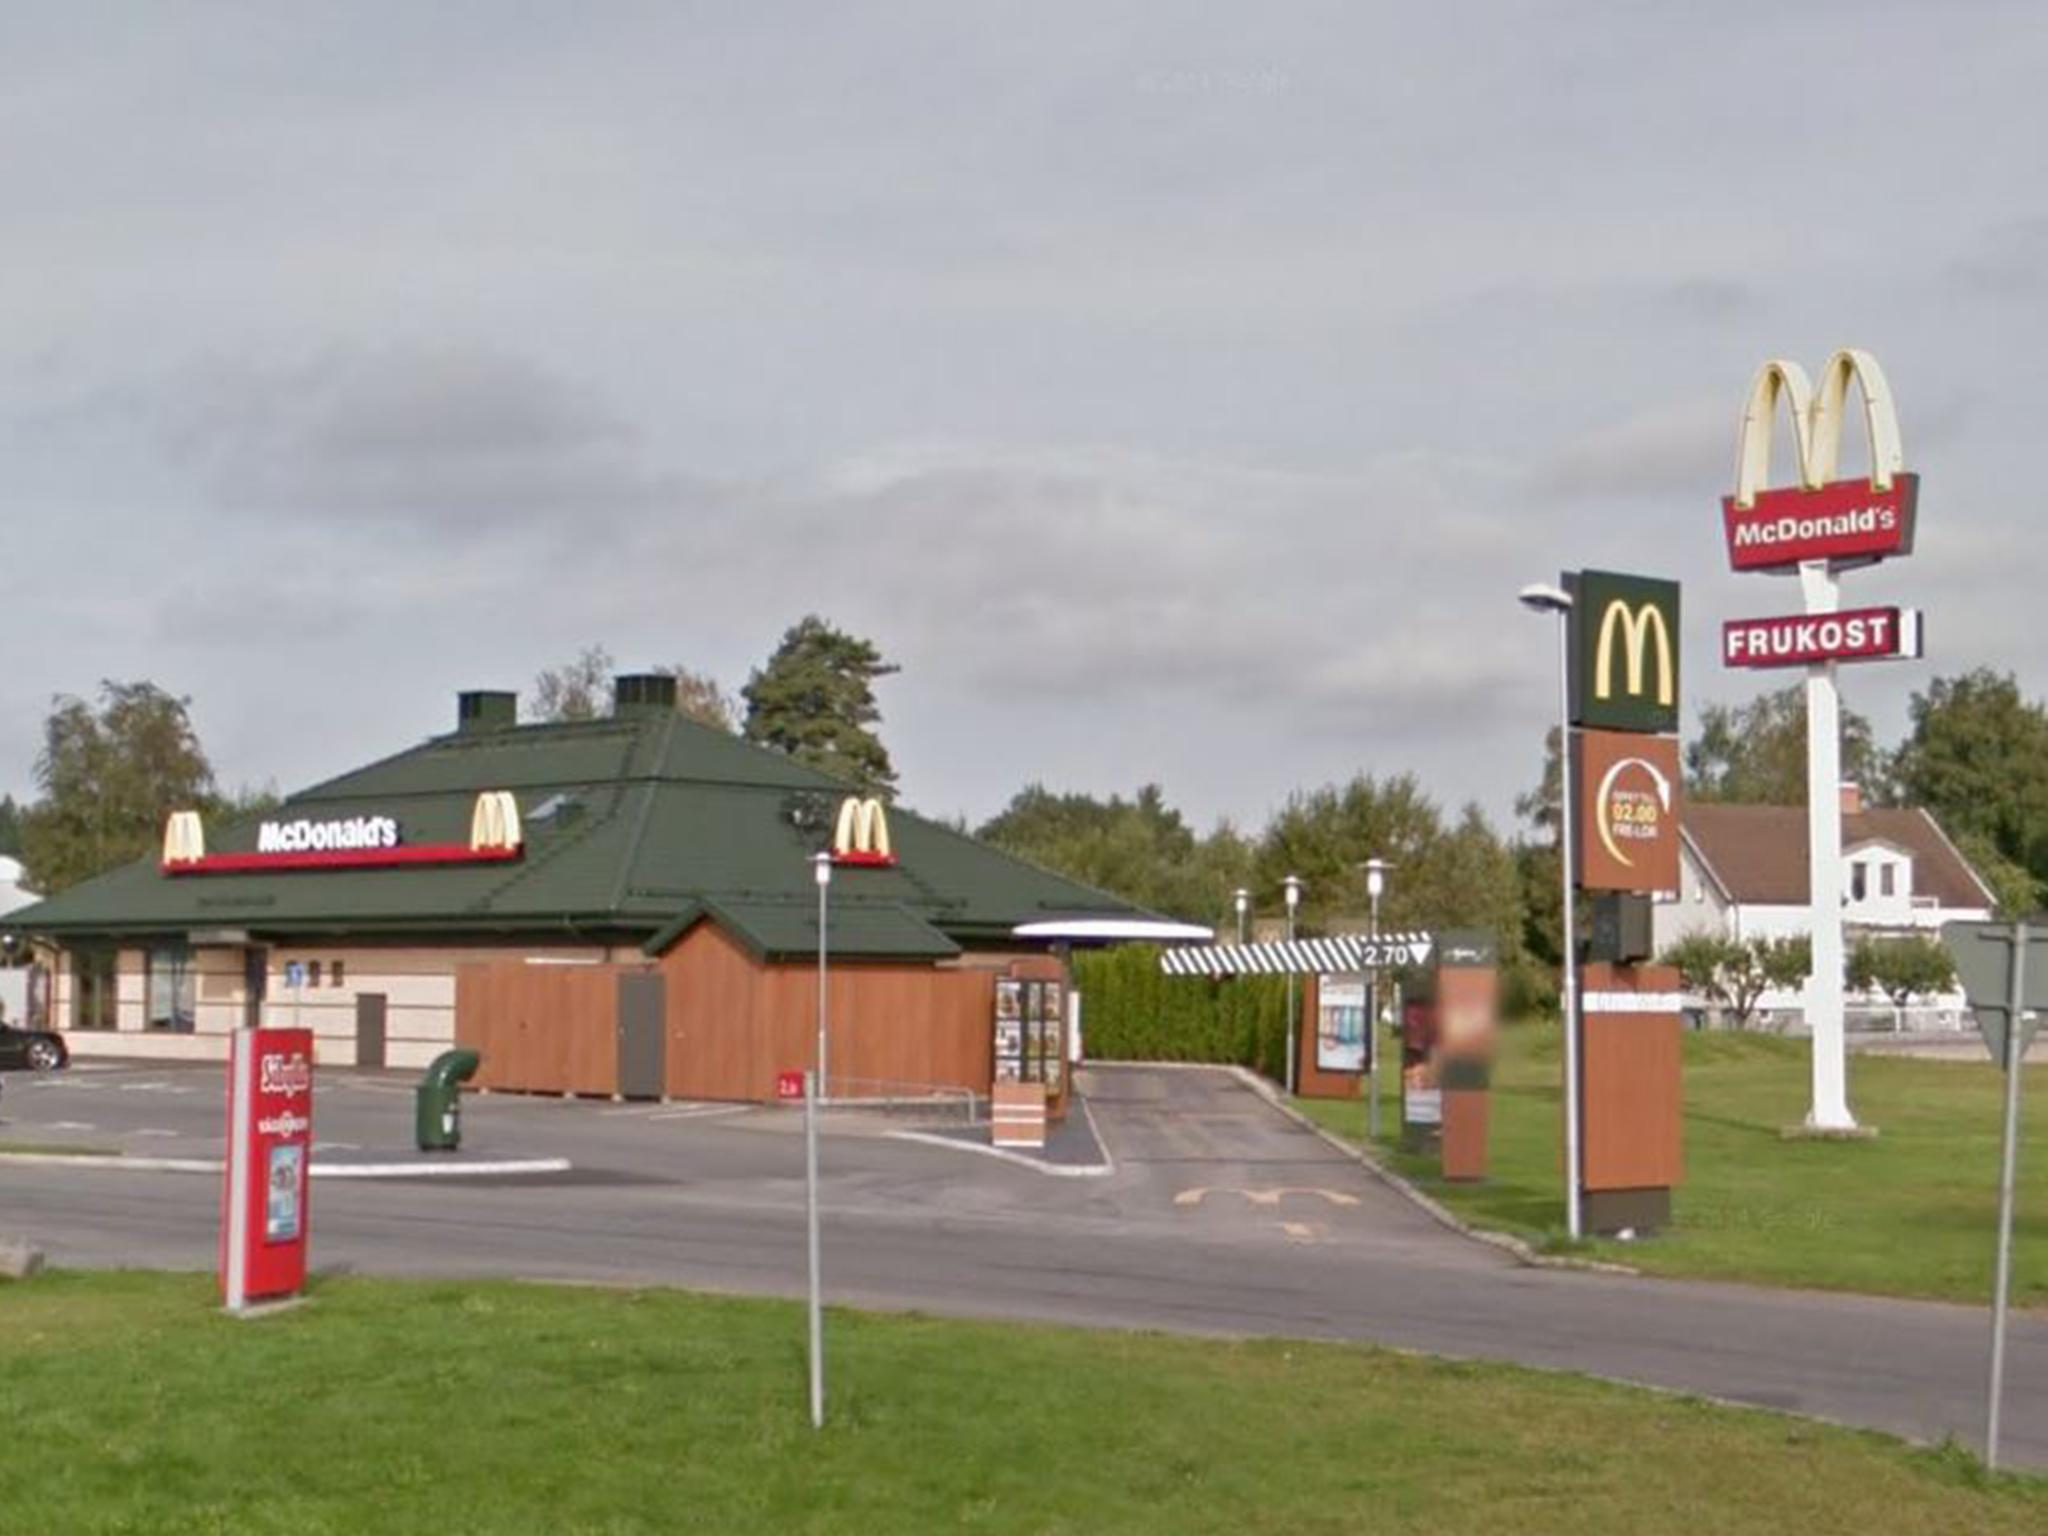 Swedish woman lives in McDonald's for three weeks while searching for  permanent home | The Independent | Independent